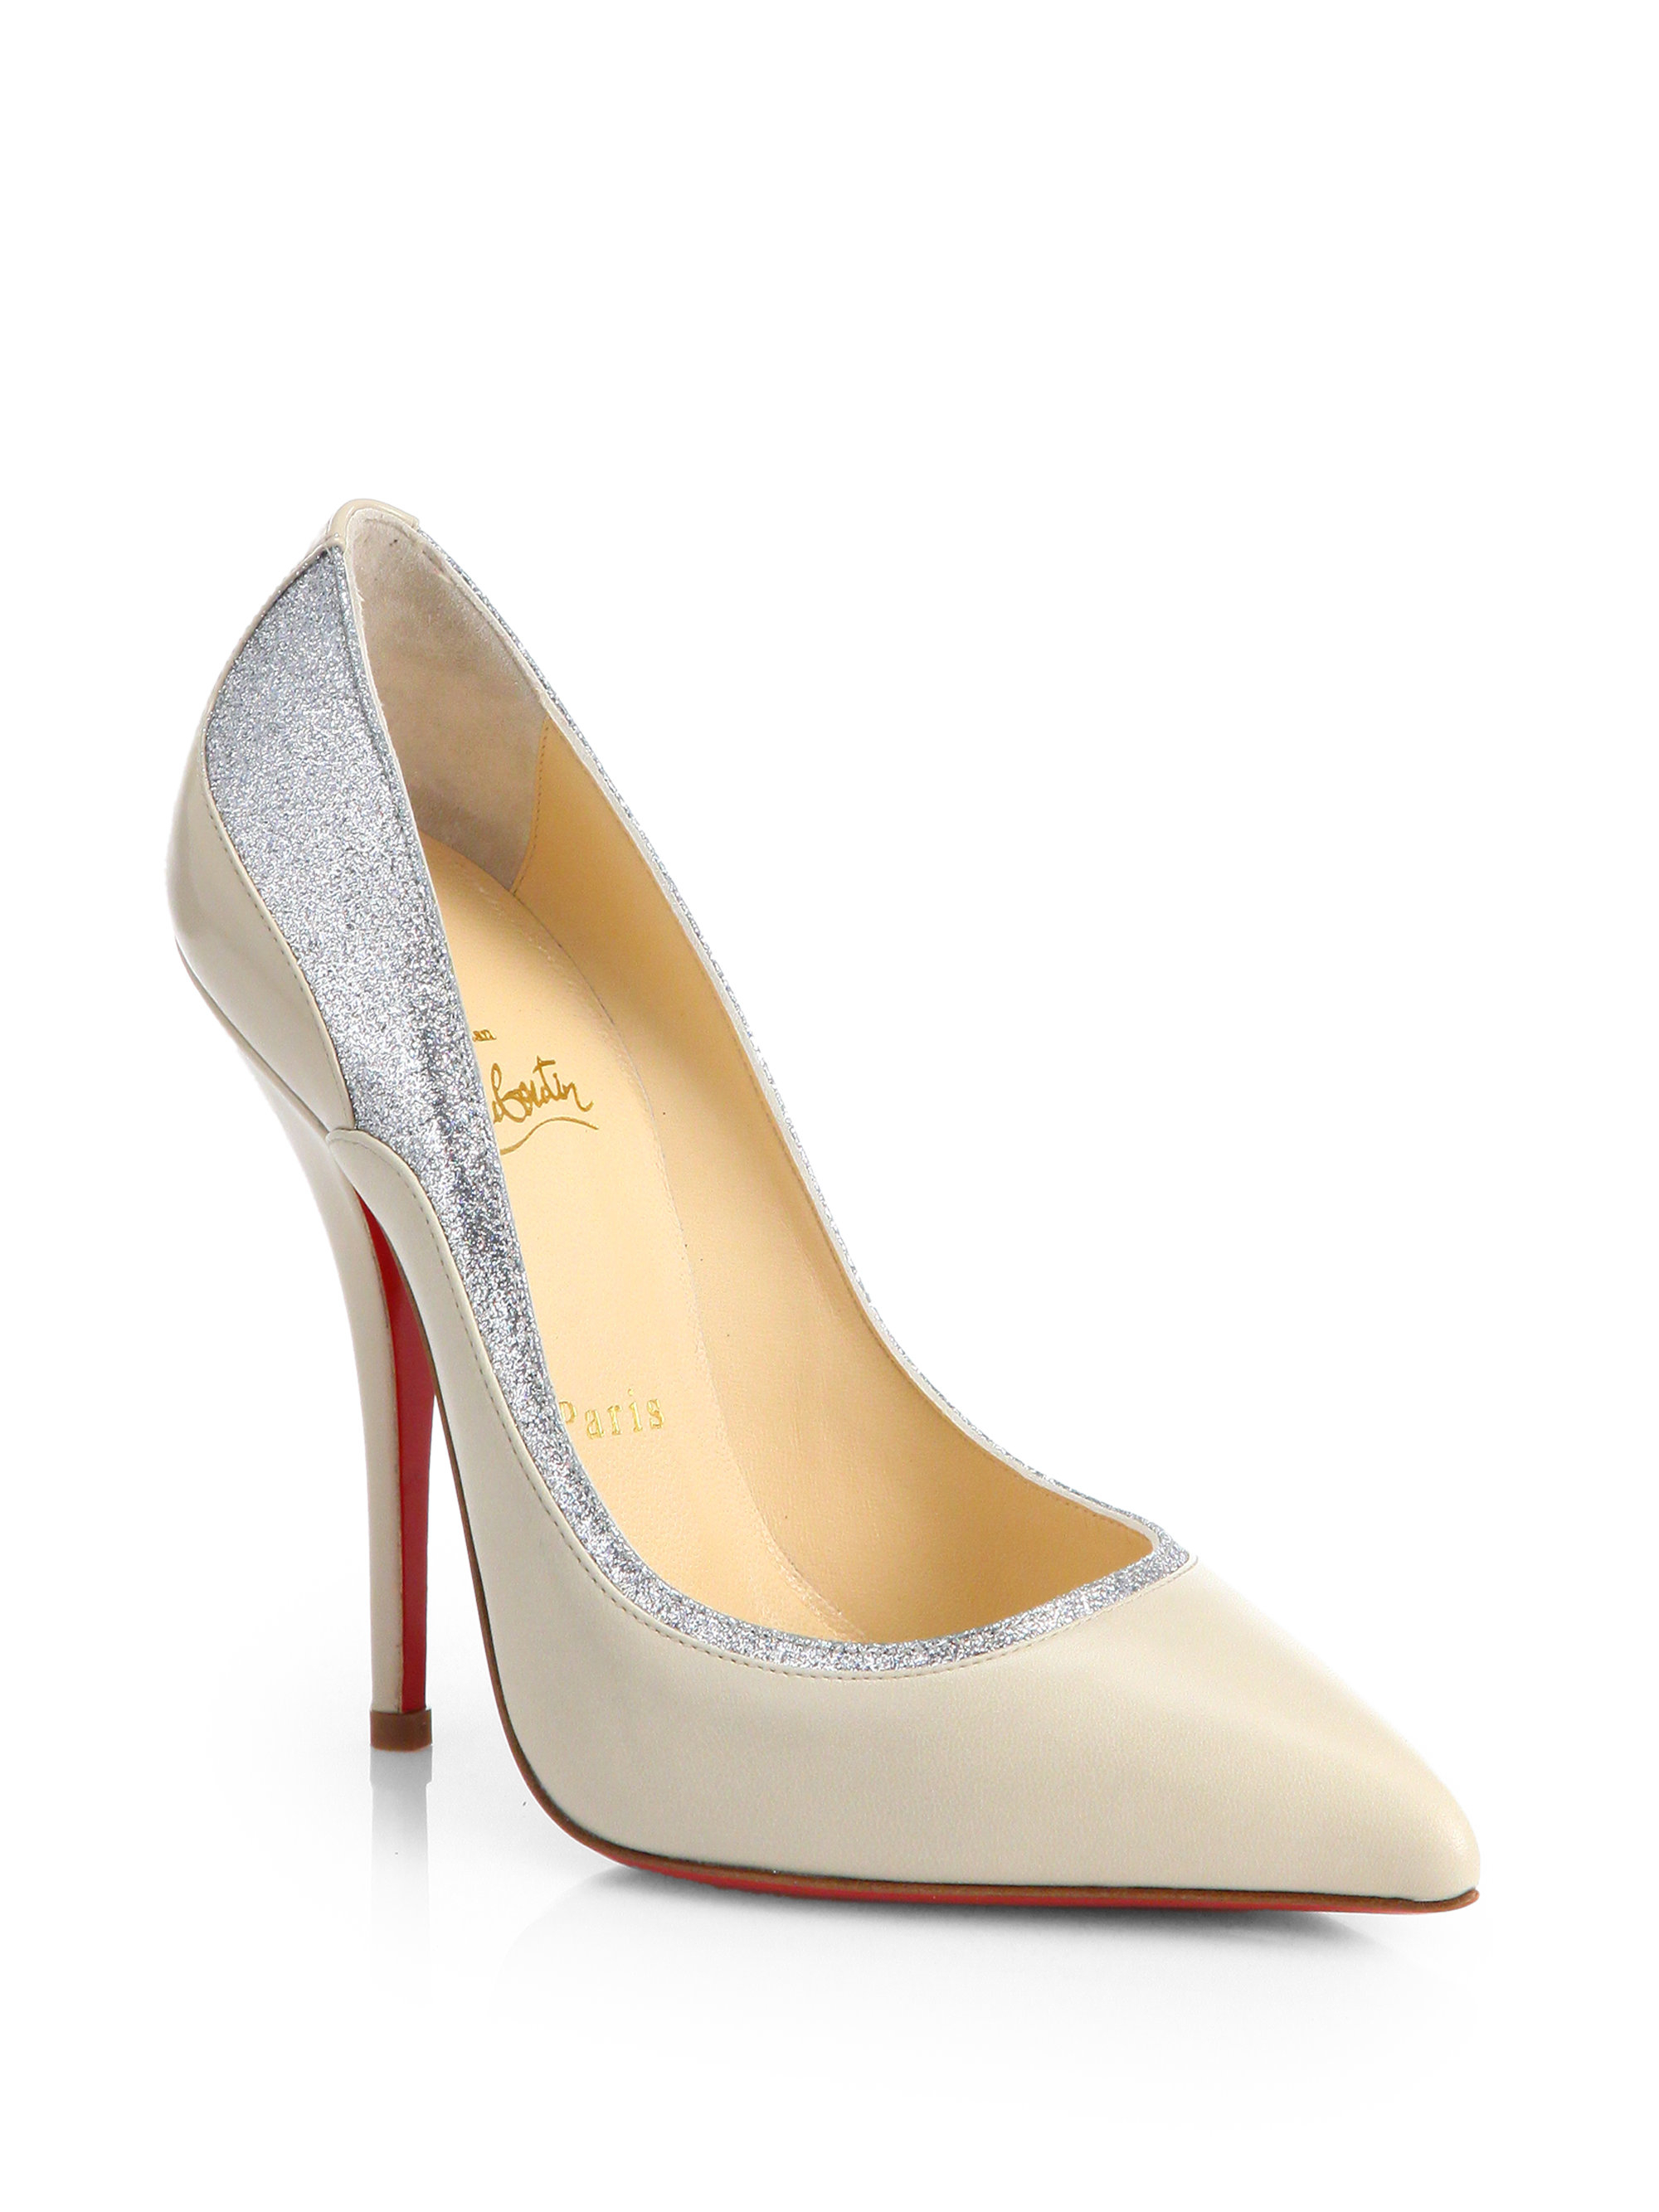 efaef6c6c3a5 ... release date lyst christian louboutin tucsy two tone leather pumps in  natural 74a32 0a2cd ...